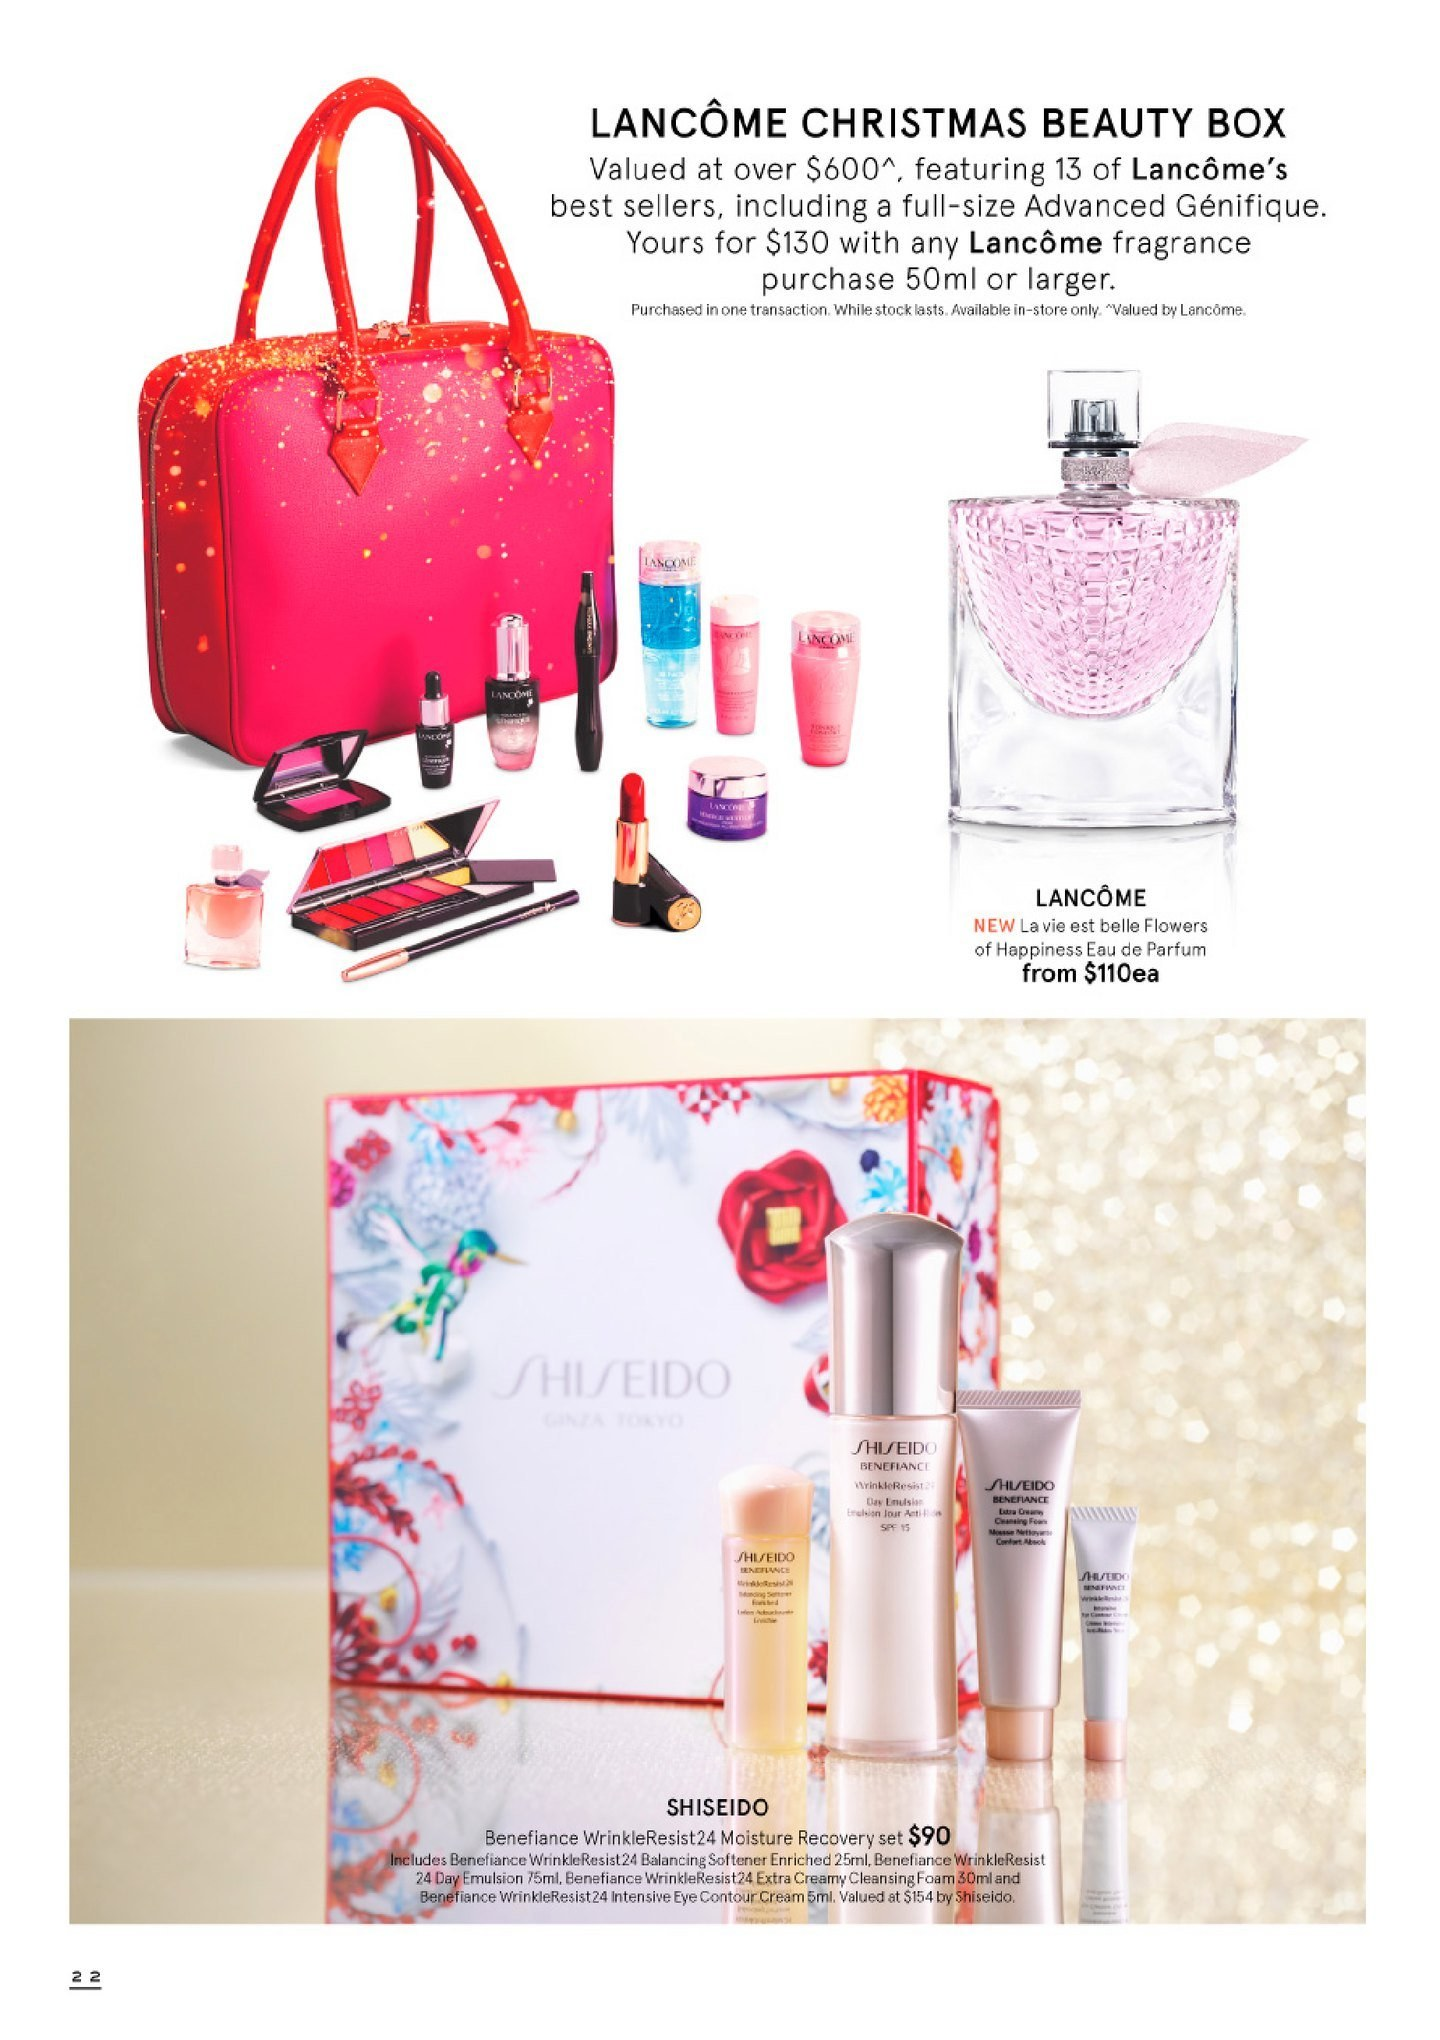 Myer Catalogue - 30.10.2018 - 24.12.2018 - Sales products - beauty box, box, cleansing foam, cream, eau de parfum, foam, fragrance, lancome, moisture. Page 22.